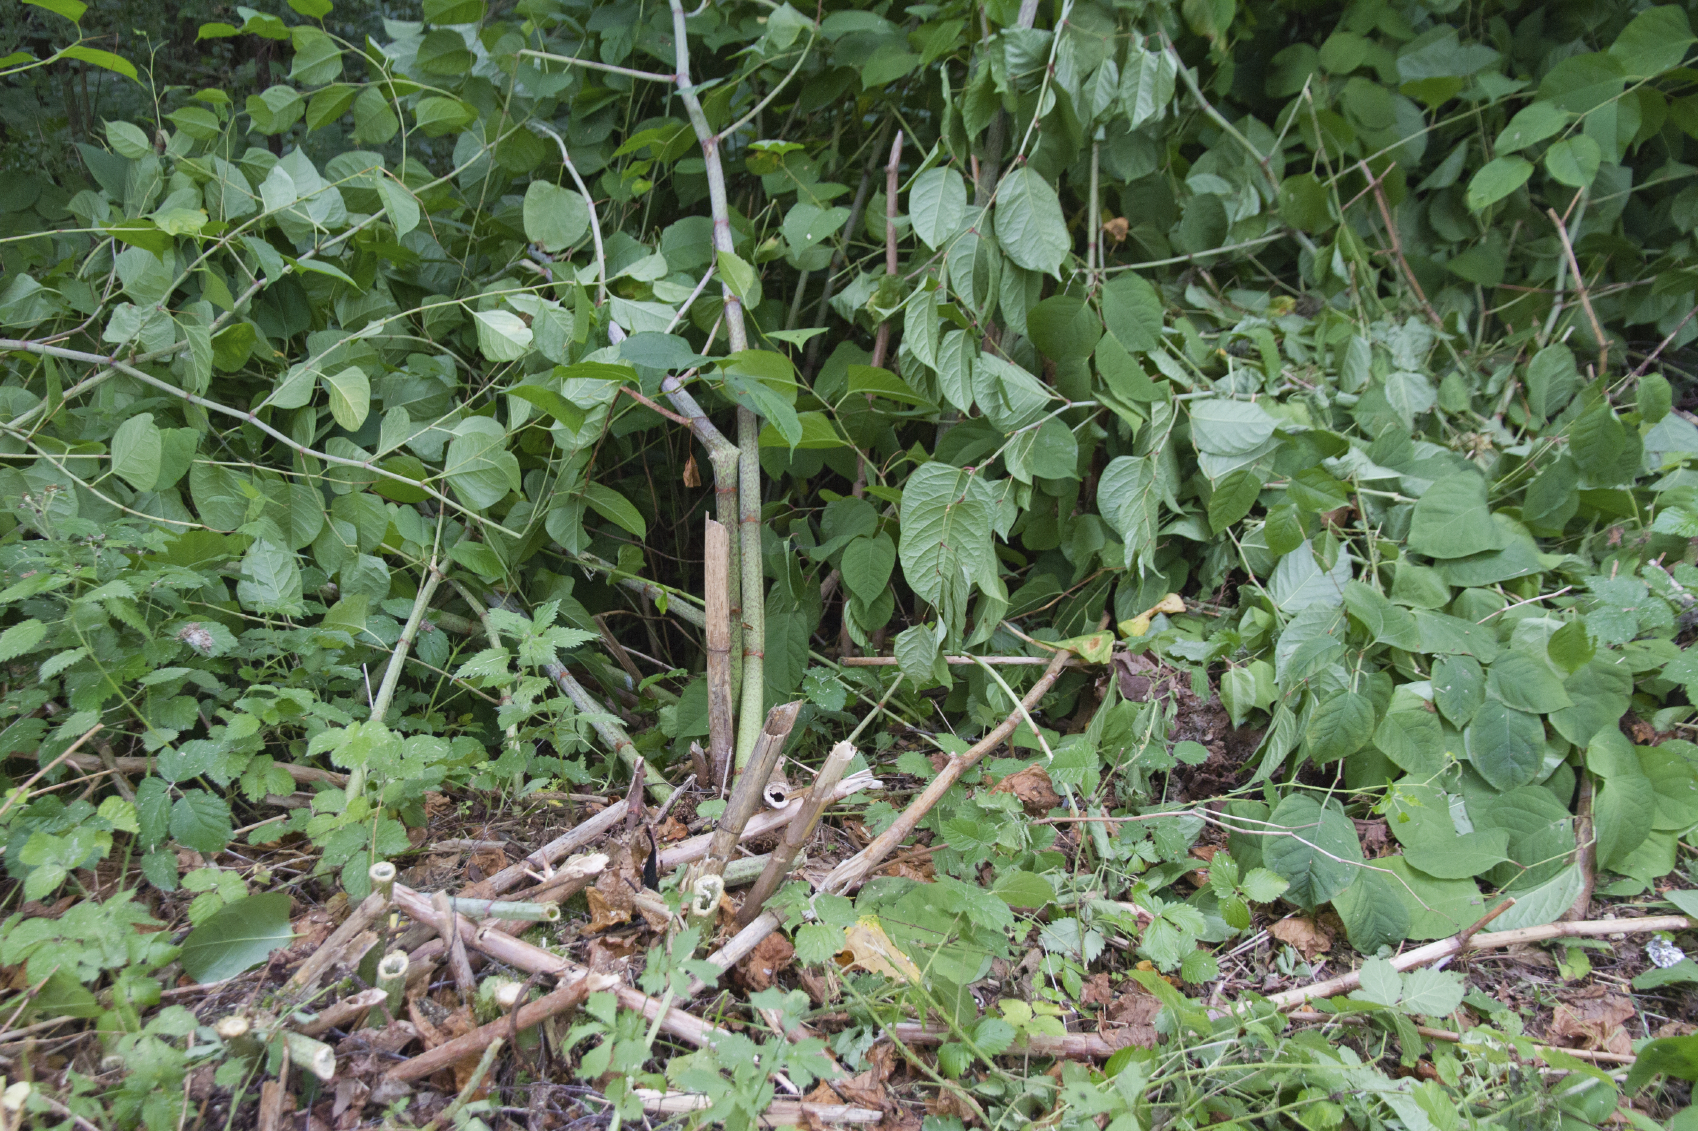 Japanese knotweed is extremely invasive and very difficult and costly to get rid of.